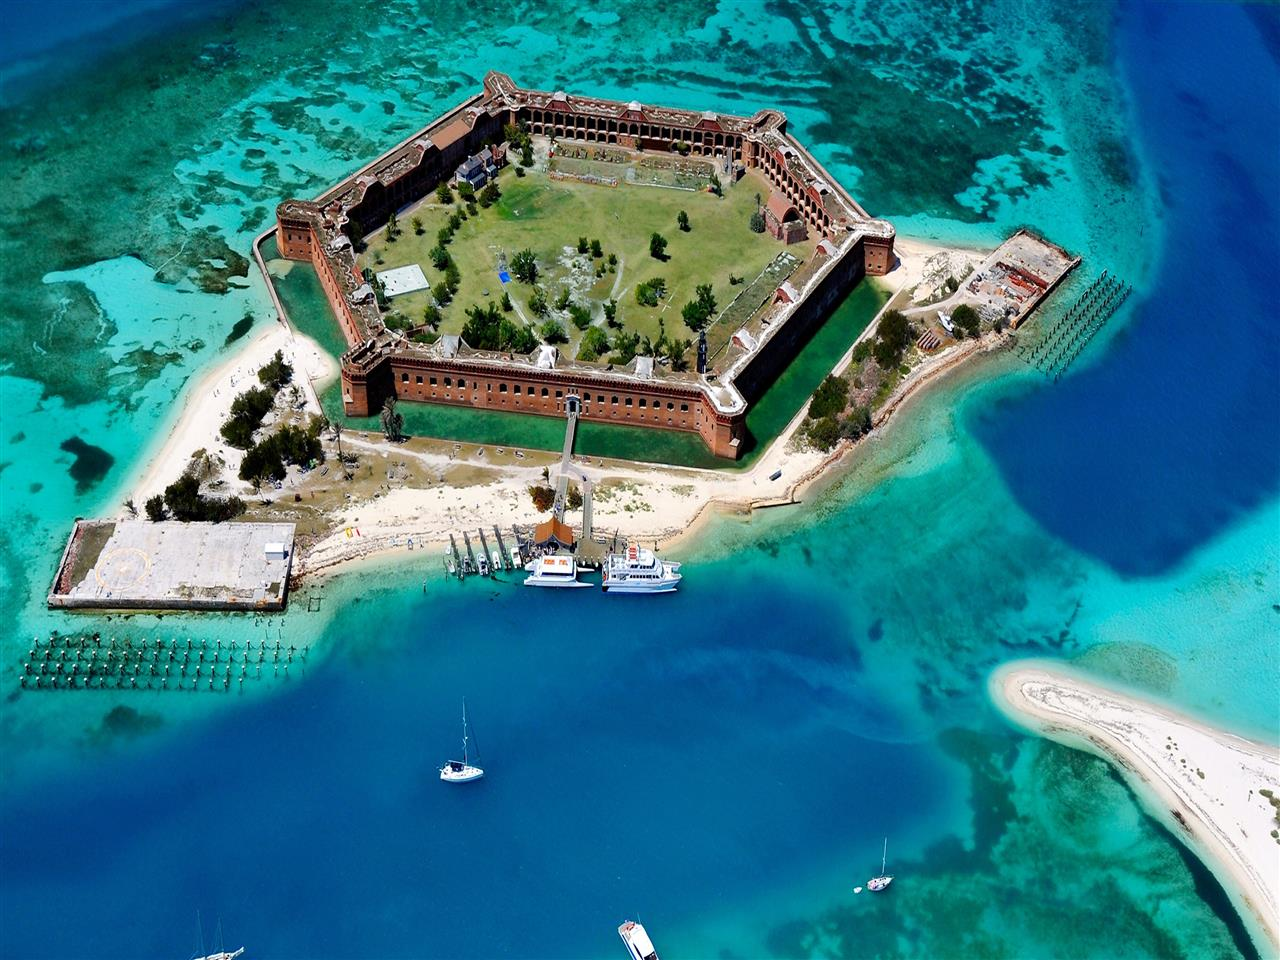 1280x960 Dry Tortugas Island Group in Florida 4K Wallpaper